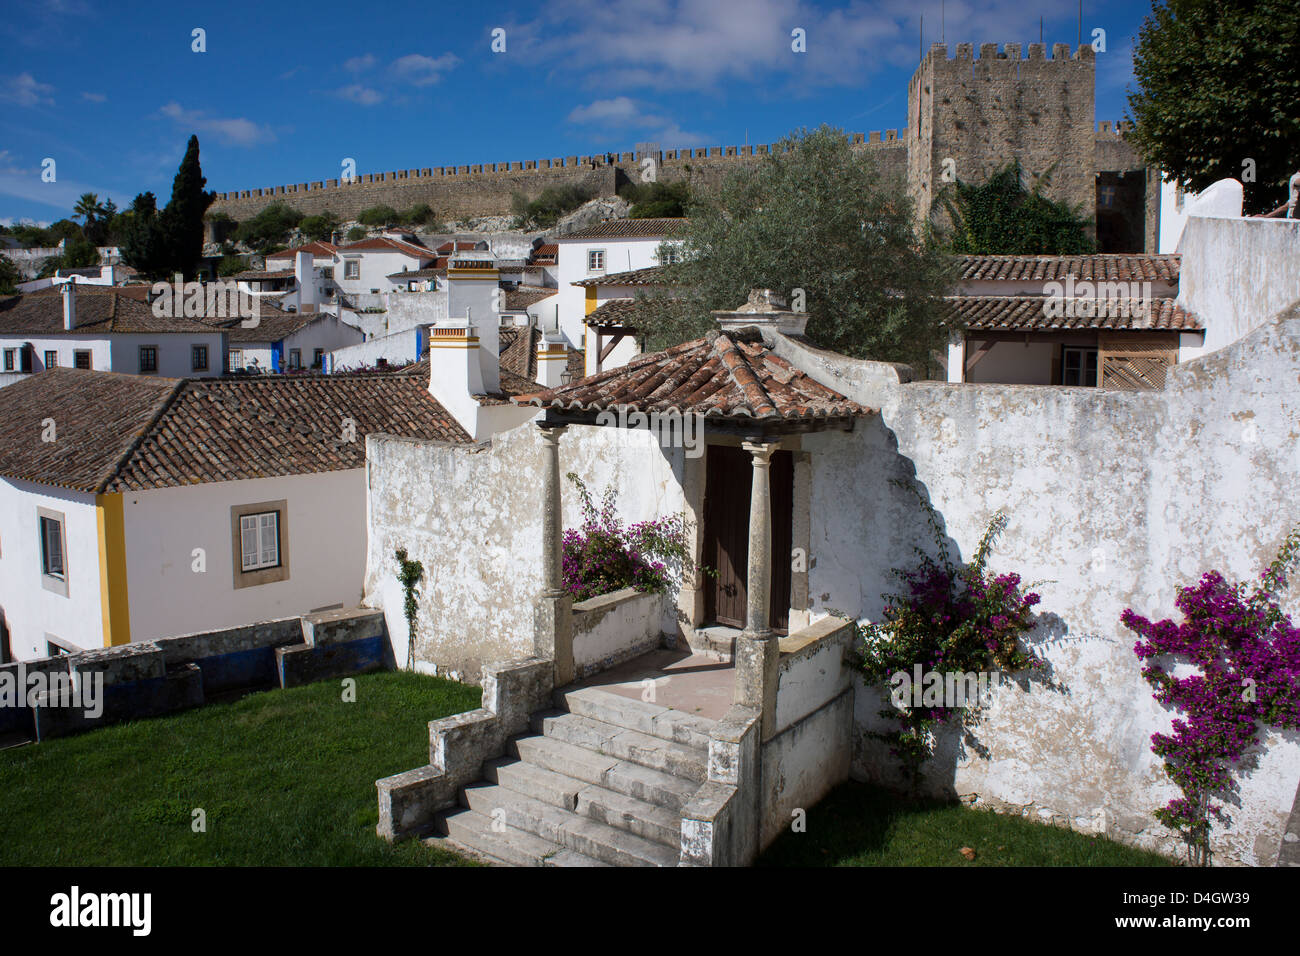 Walled medieval town, declared national monument, Obidos, Estremadura, Portugal - Stock Image